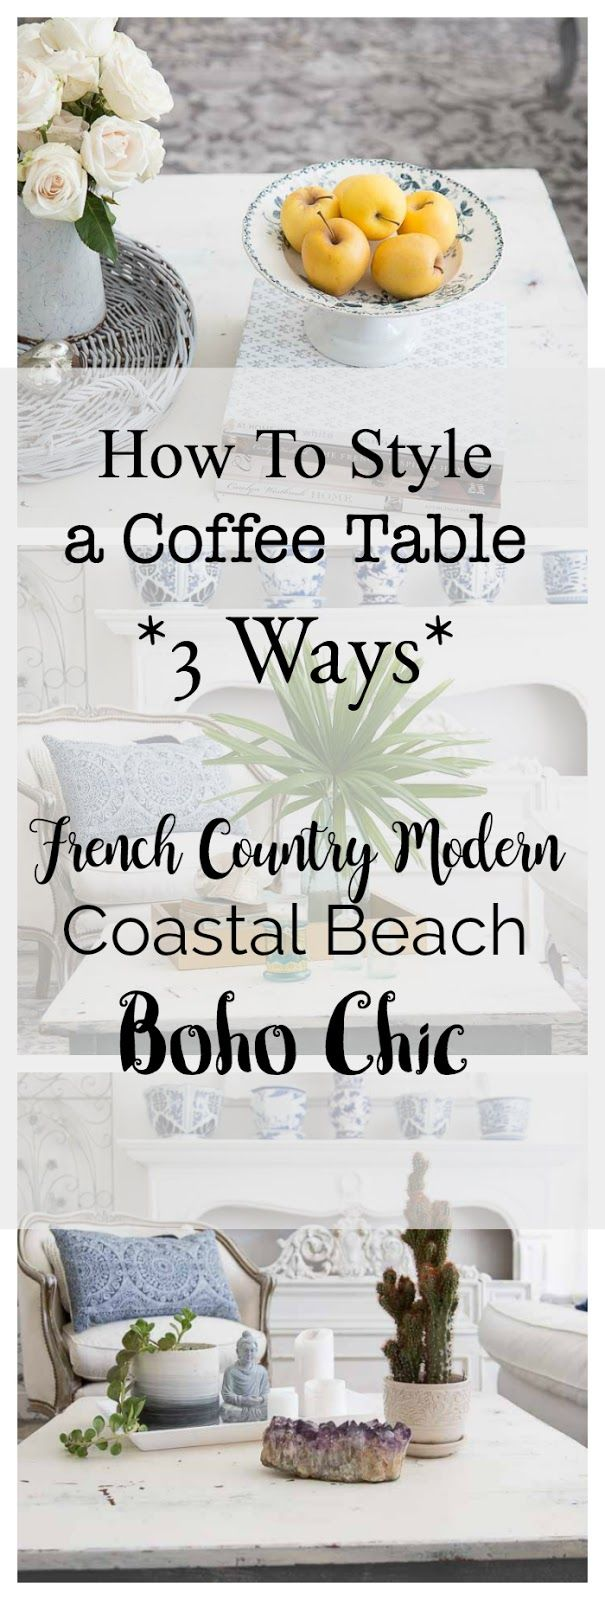 How to quickly arrange a coffee table like a designer 3 ways in French country modern, coastal beach and boho chic styles.  #coffeetable #style